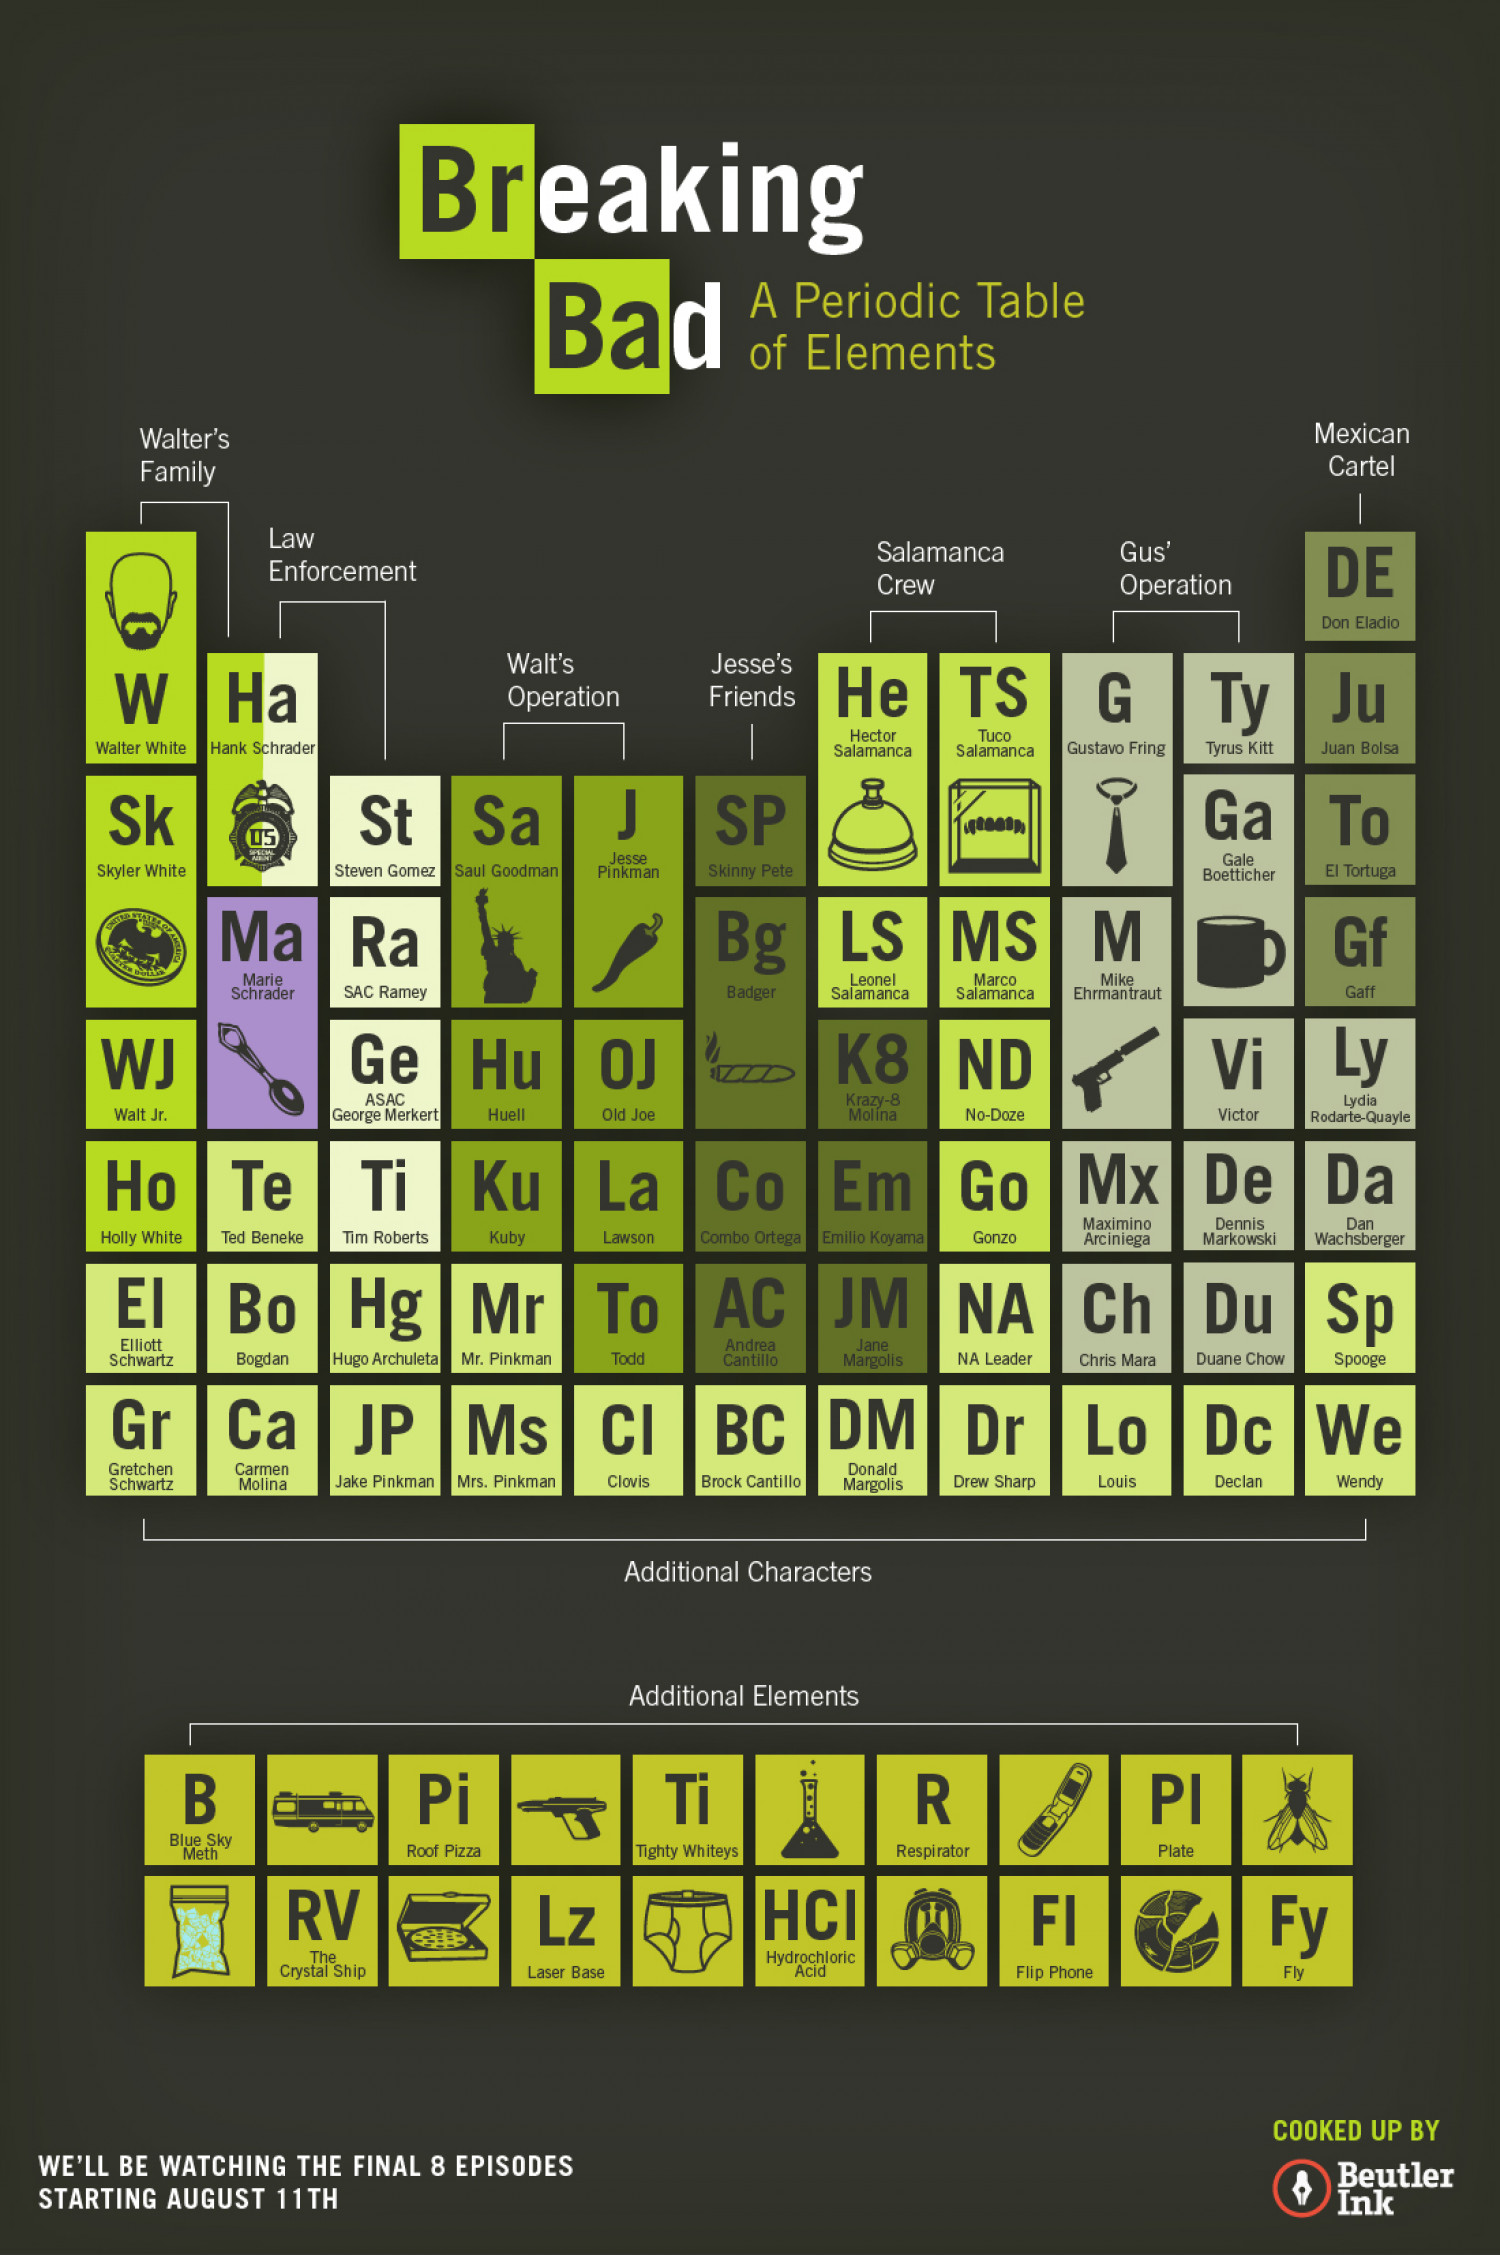 Breaking Bad: A Periodic Table of Elements Infographic